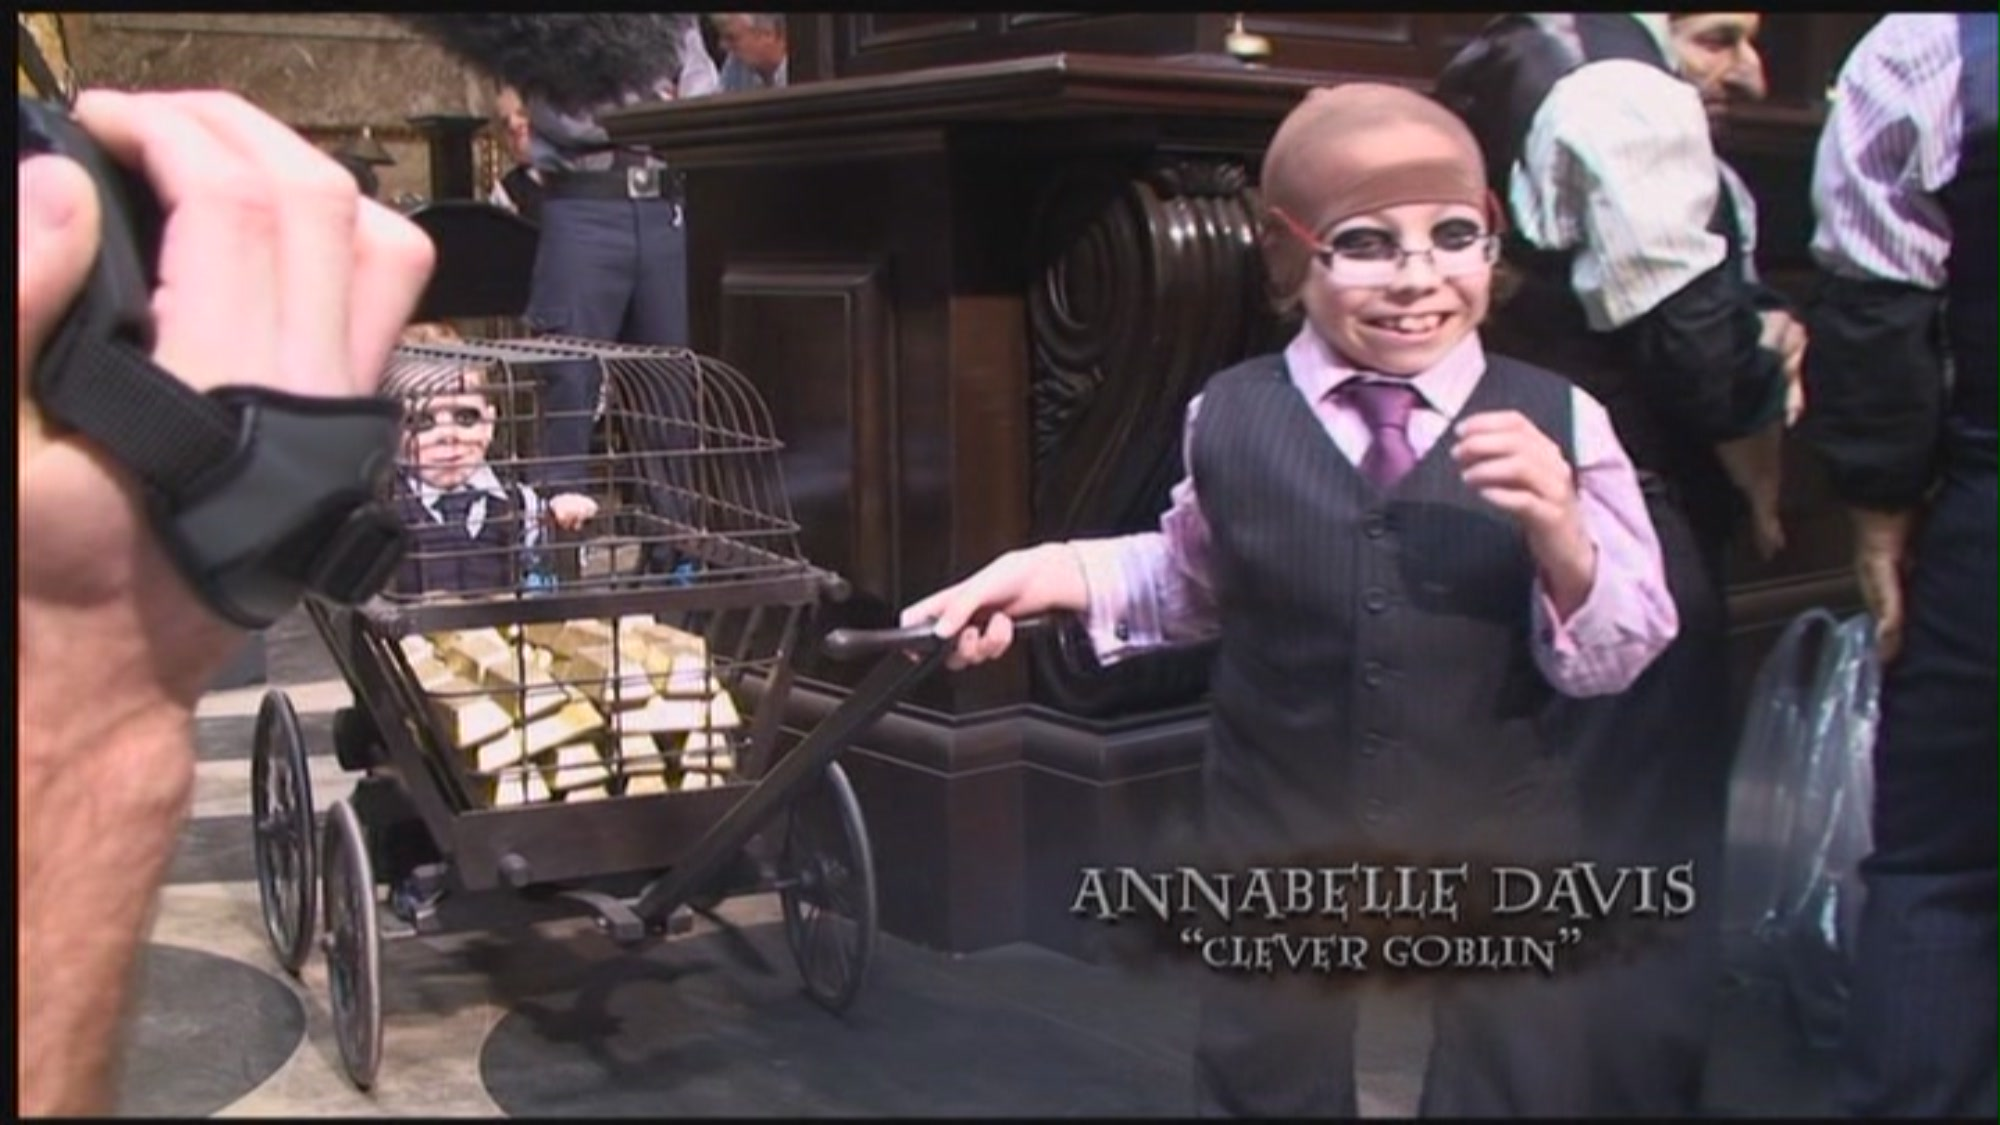 Here is me and and my brother Harrison on the set, in Gringotts bank.